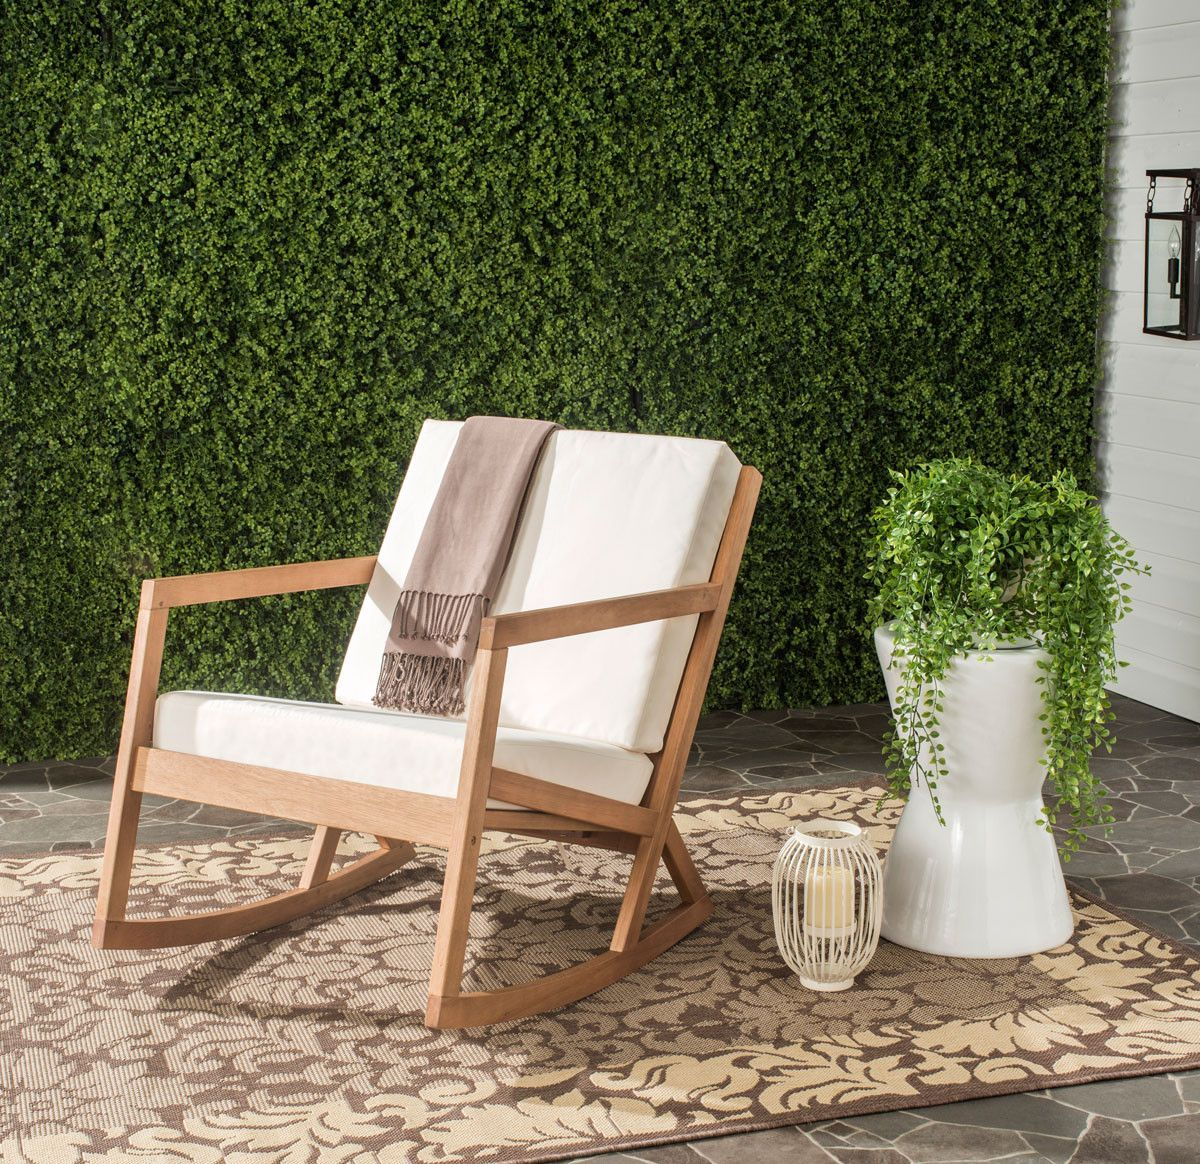 Vernon Outdoor Rocking Chair Outdoors Outdoor Rocking Chairs Patio Rocking Chairs Modern Outdoor Chairs